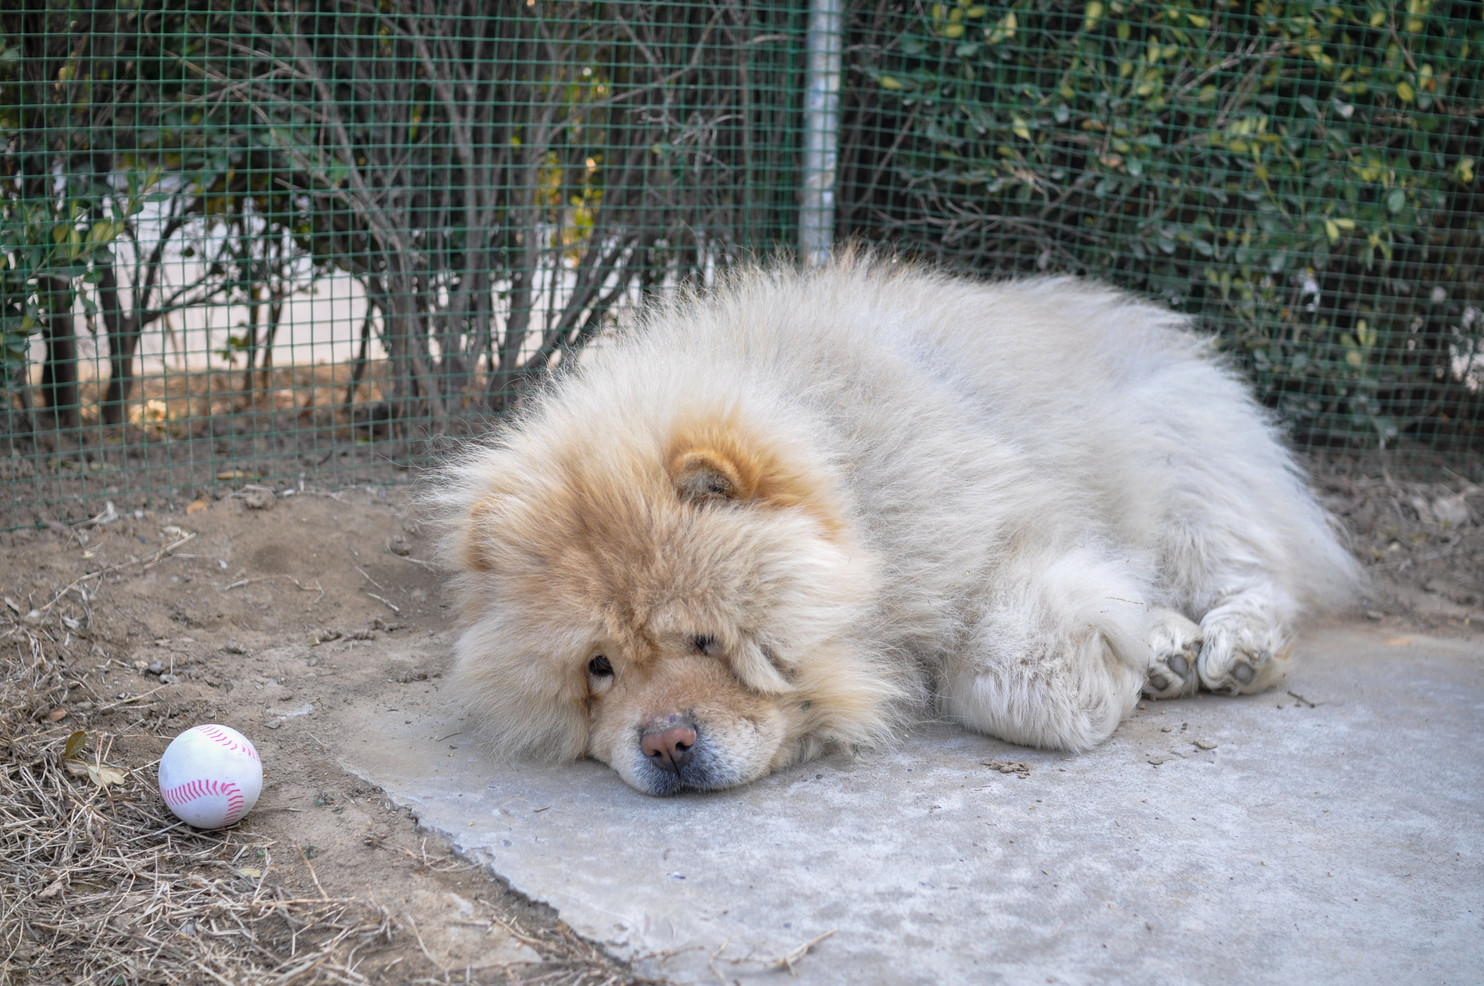 Xiao Xiong ignores Xiao Dong's attempts to play with him. Xiao Xiong once belonged to a friend of one of the nannies at New Hope who could not care for him any longer. The sad dog does little but sit there every day.